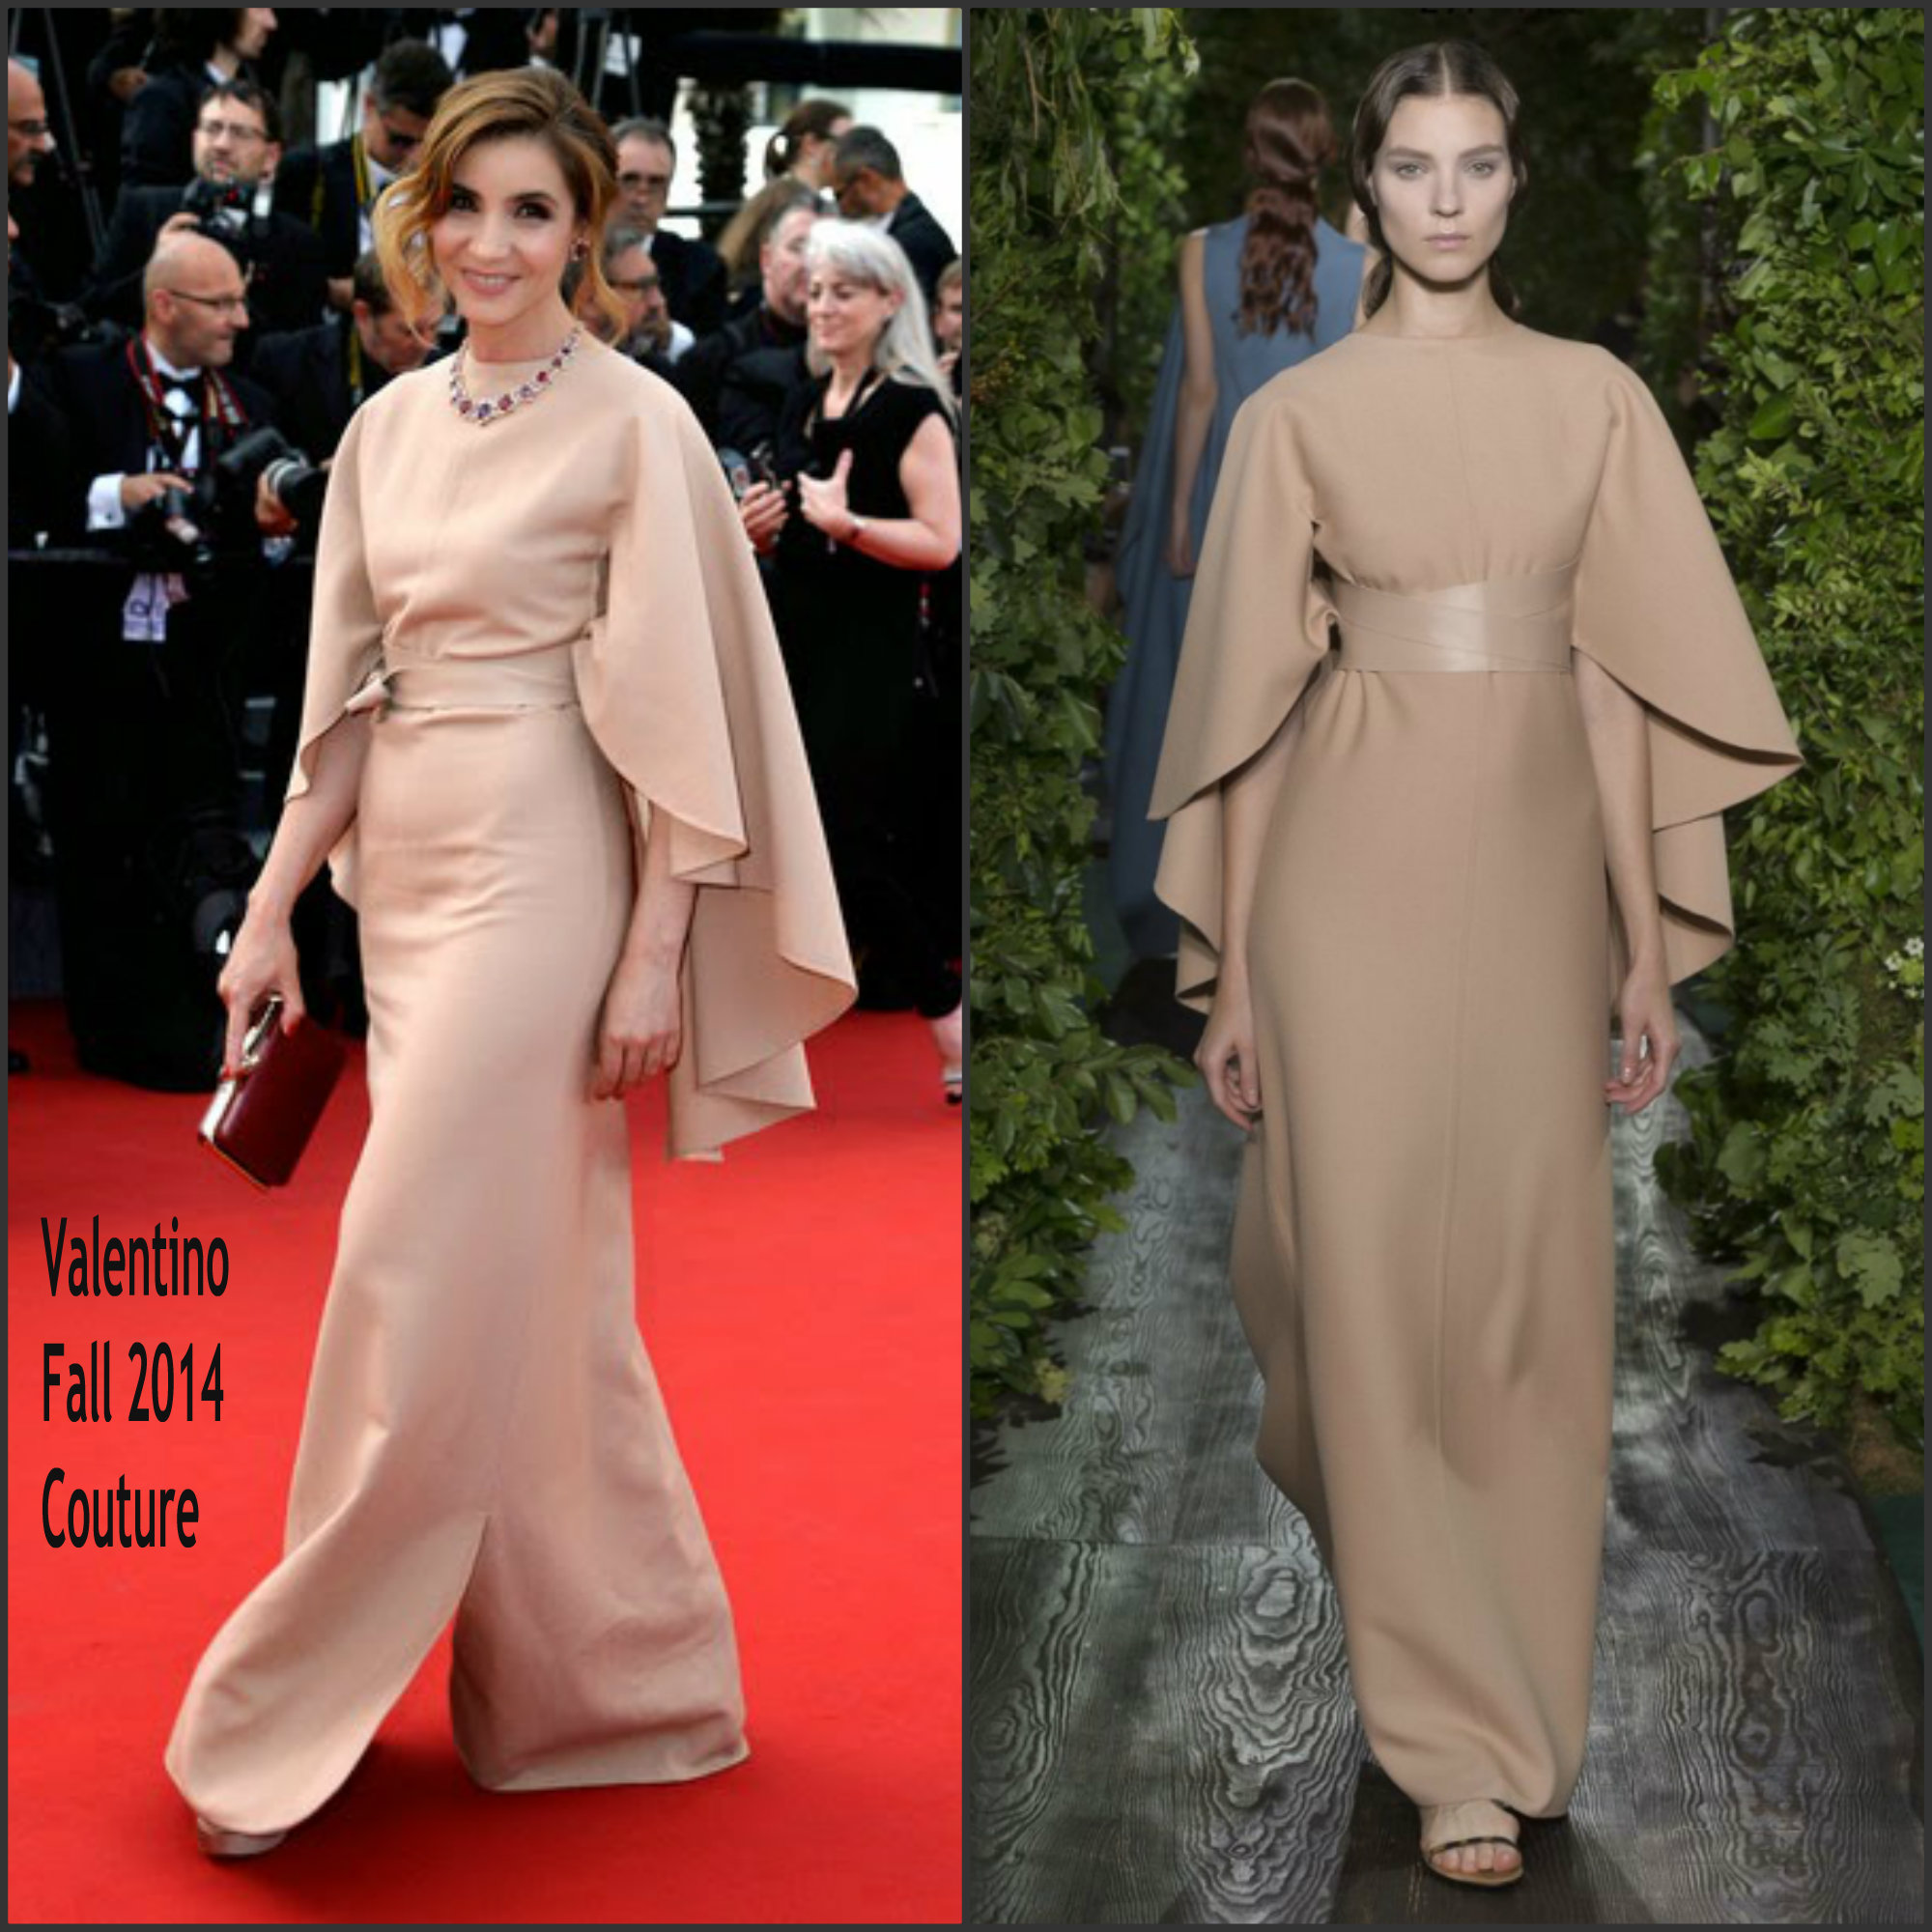 clotilde-courau-in-valentino-couture-la-tete-haute-cannes-film-festival-premiere-and-opening-ceremony